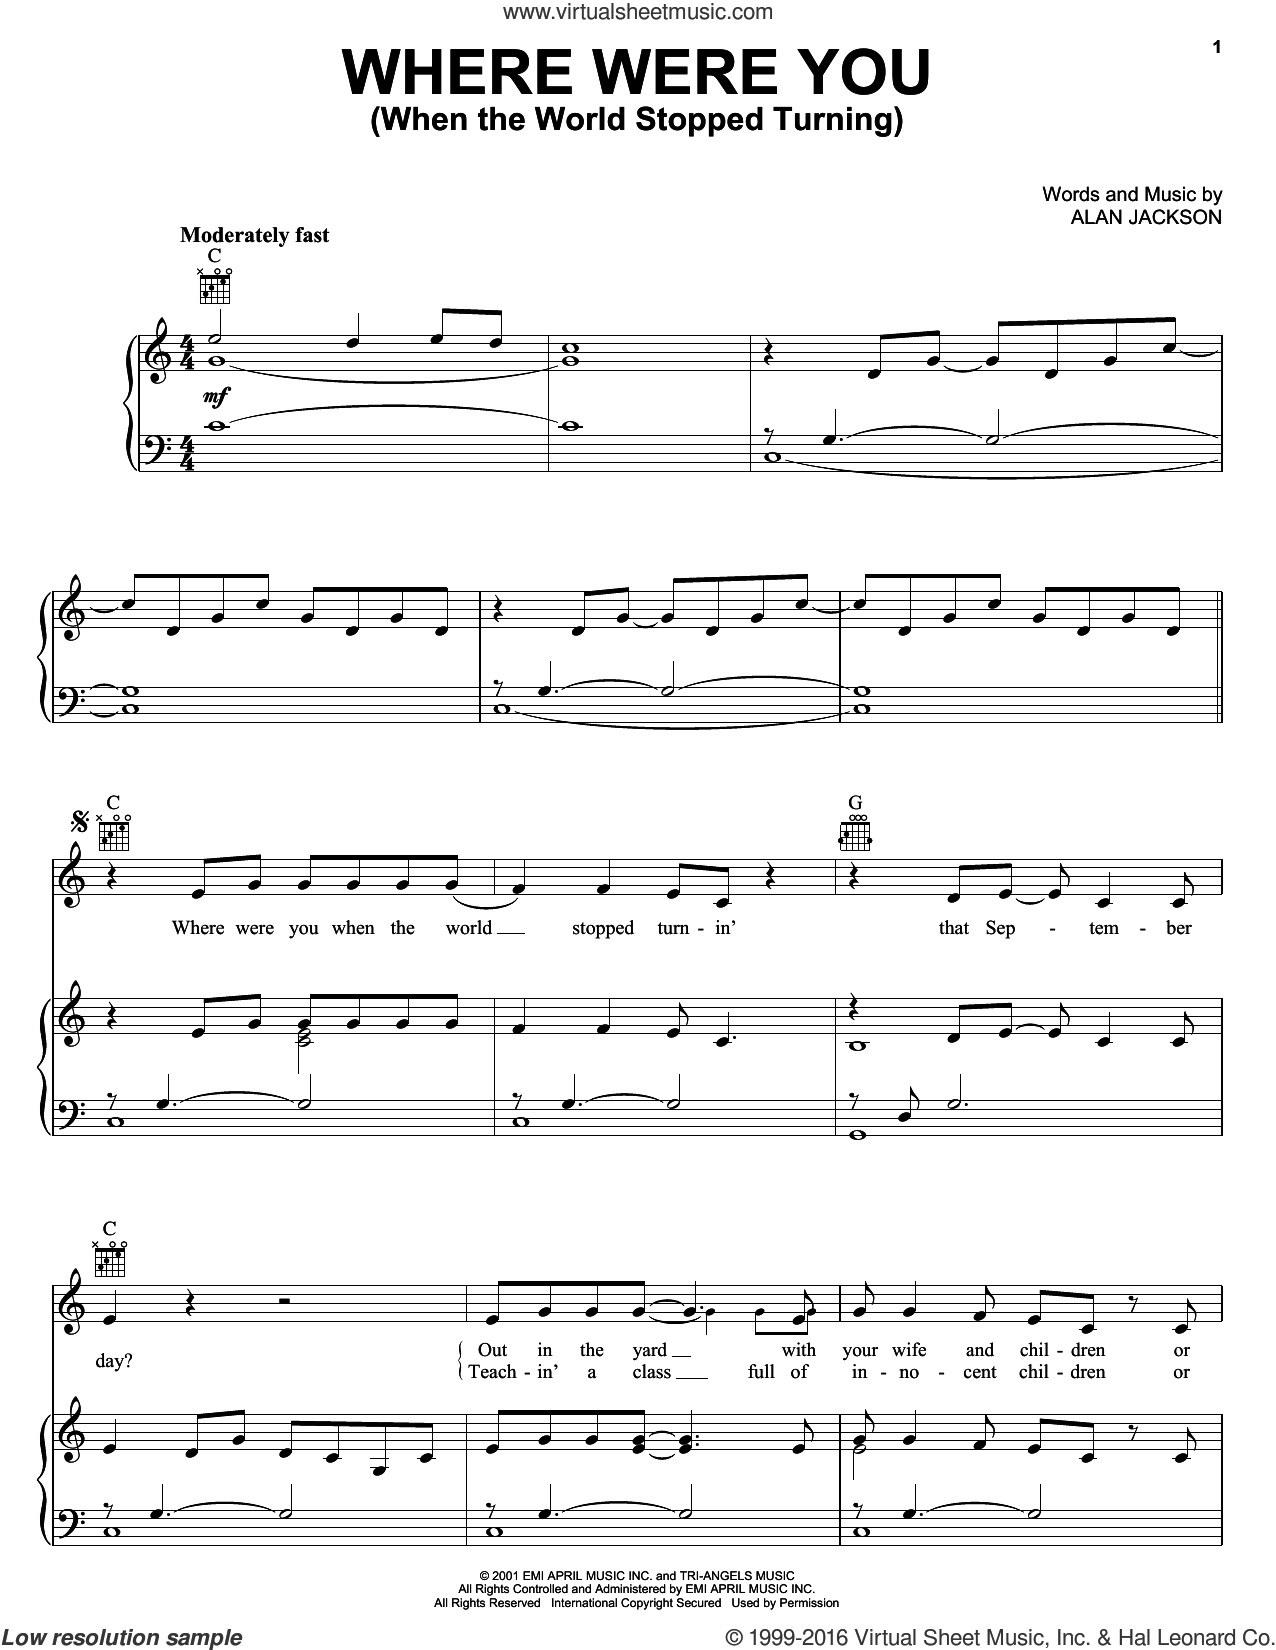 Where Were You (When The World Stopped Turning) sheet music for voice, piano or guitar by Alan Jackson